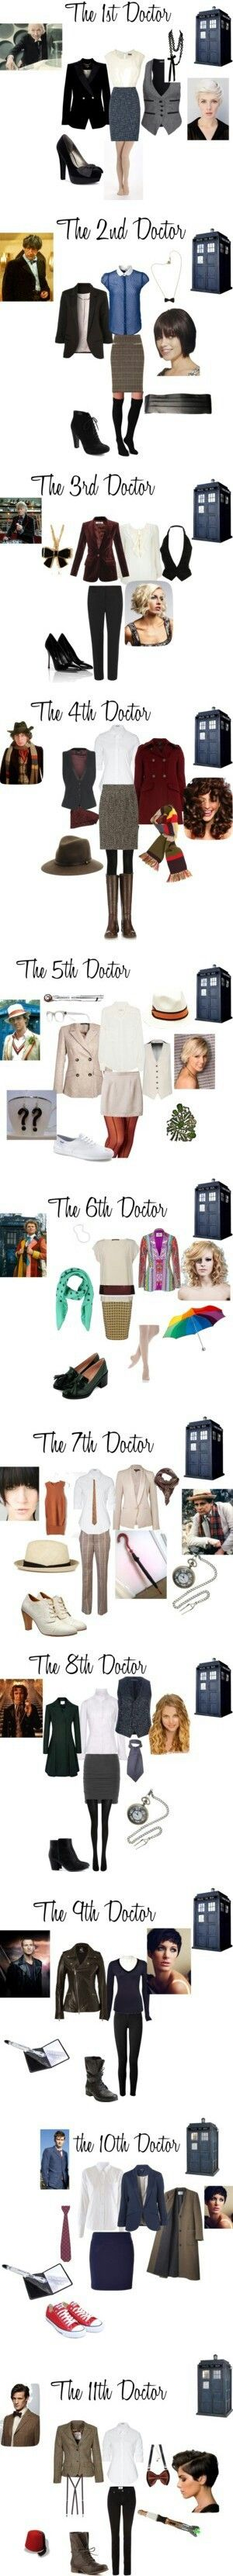 The doctors! Ideas for future costumes